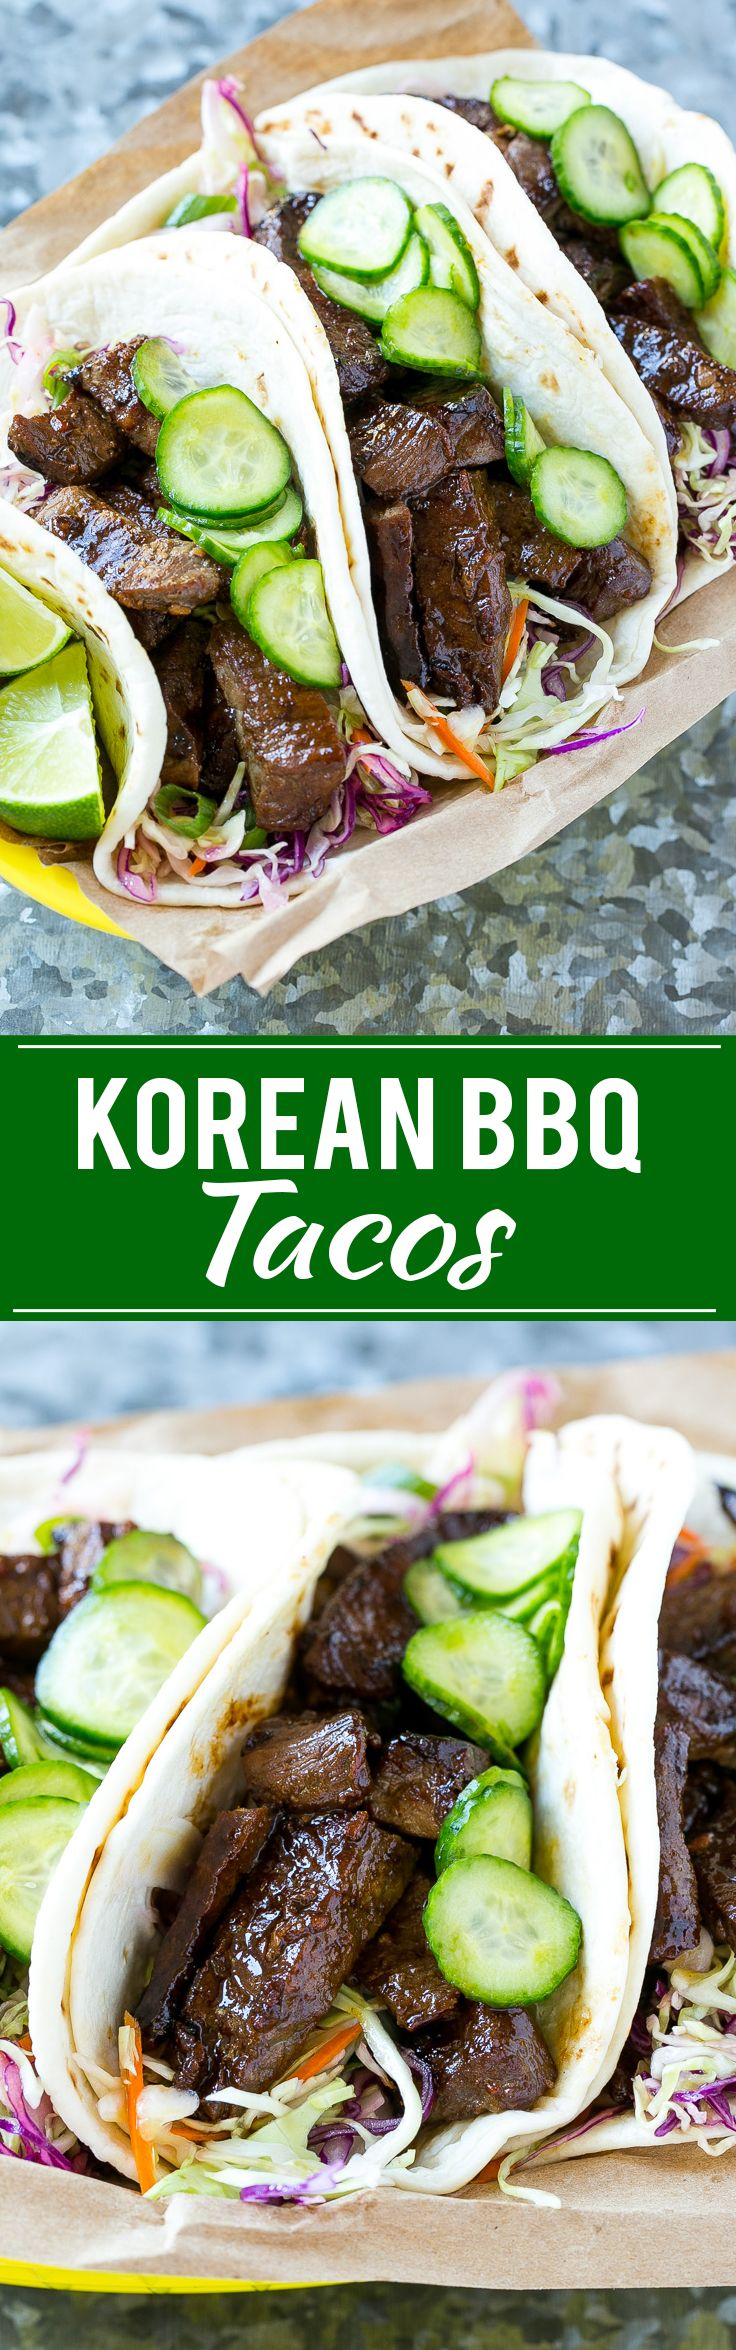 Korean BBQ Tacos - Dinner at the Zoo